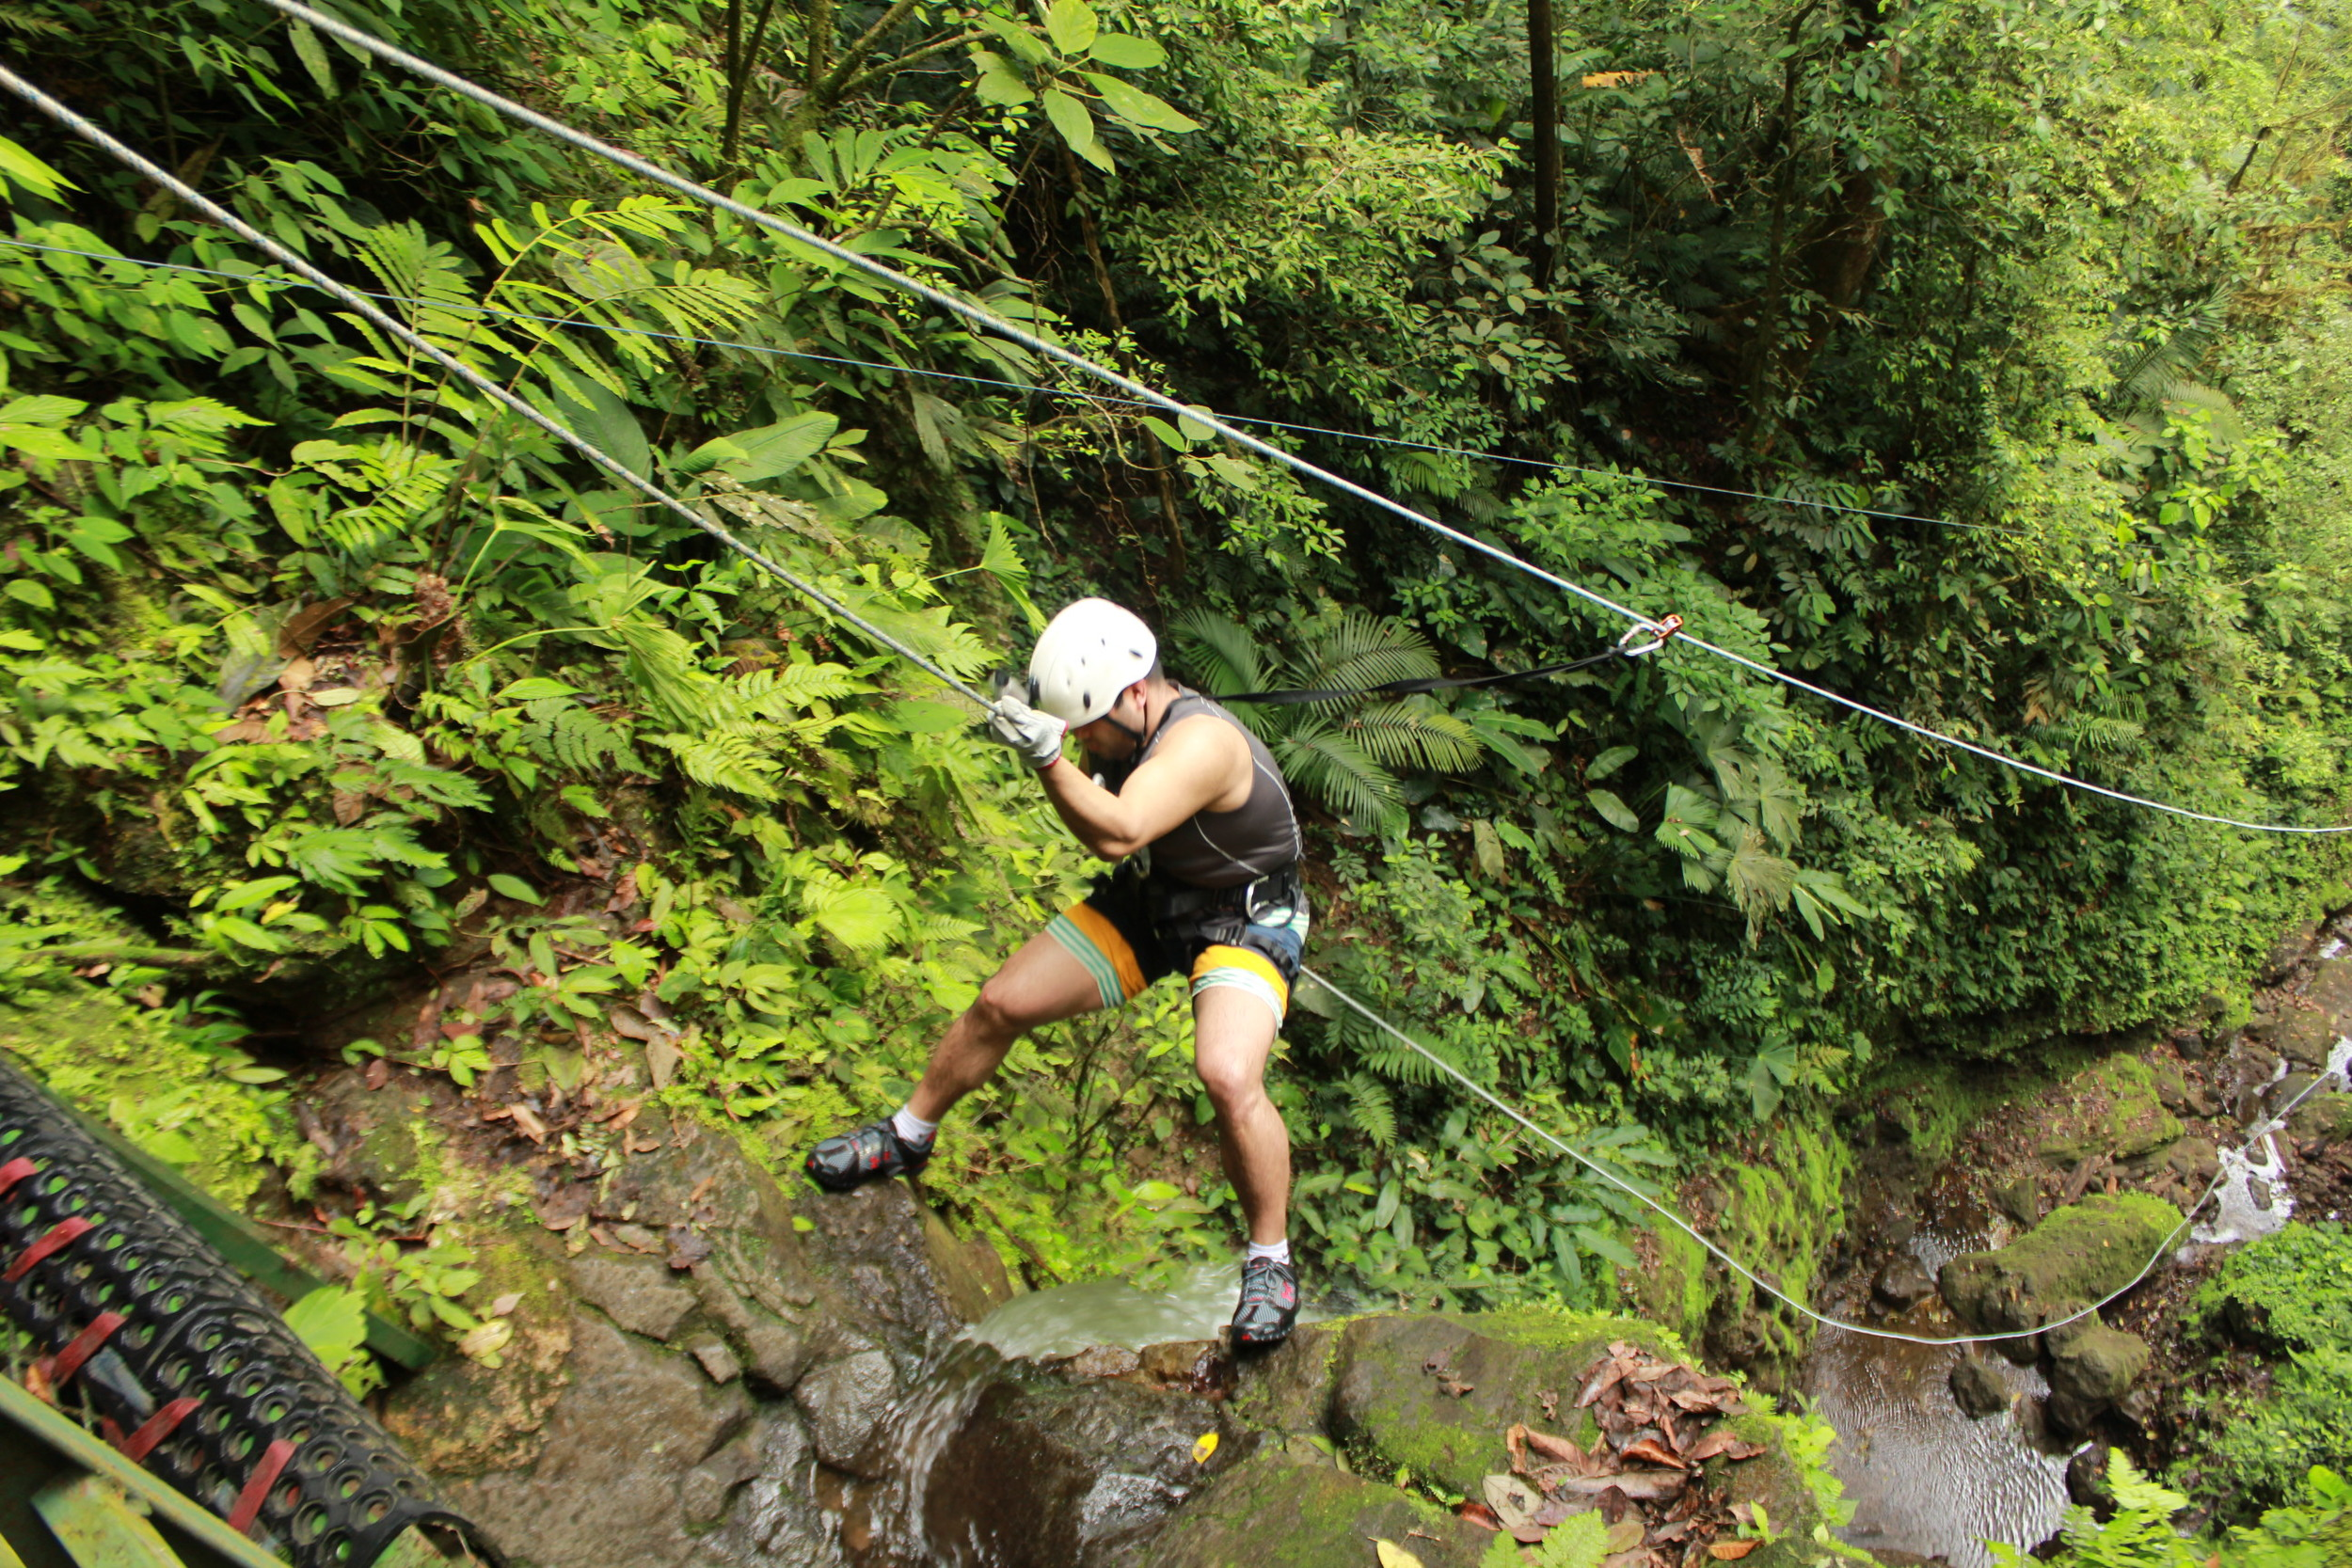 Costa Rica, 2013. Slipping off the cliff without a proper security harness.